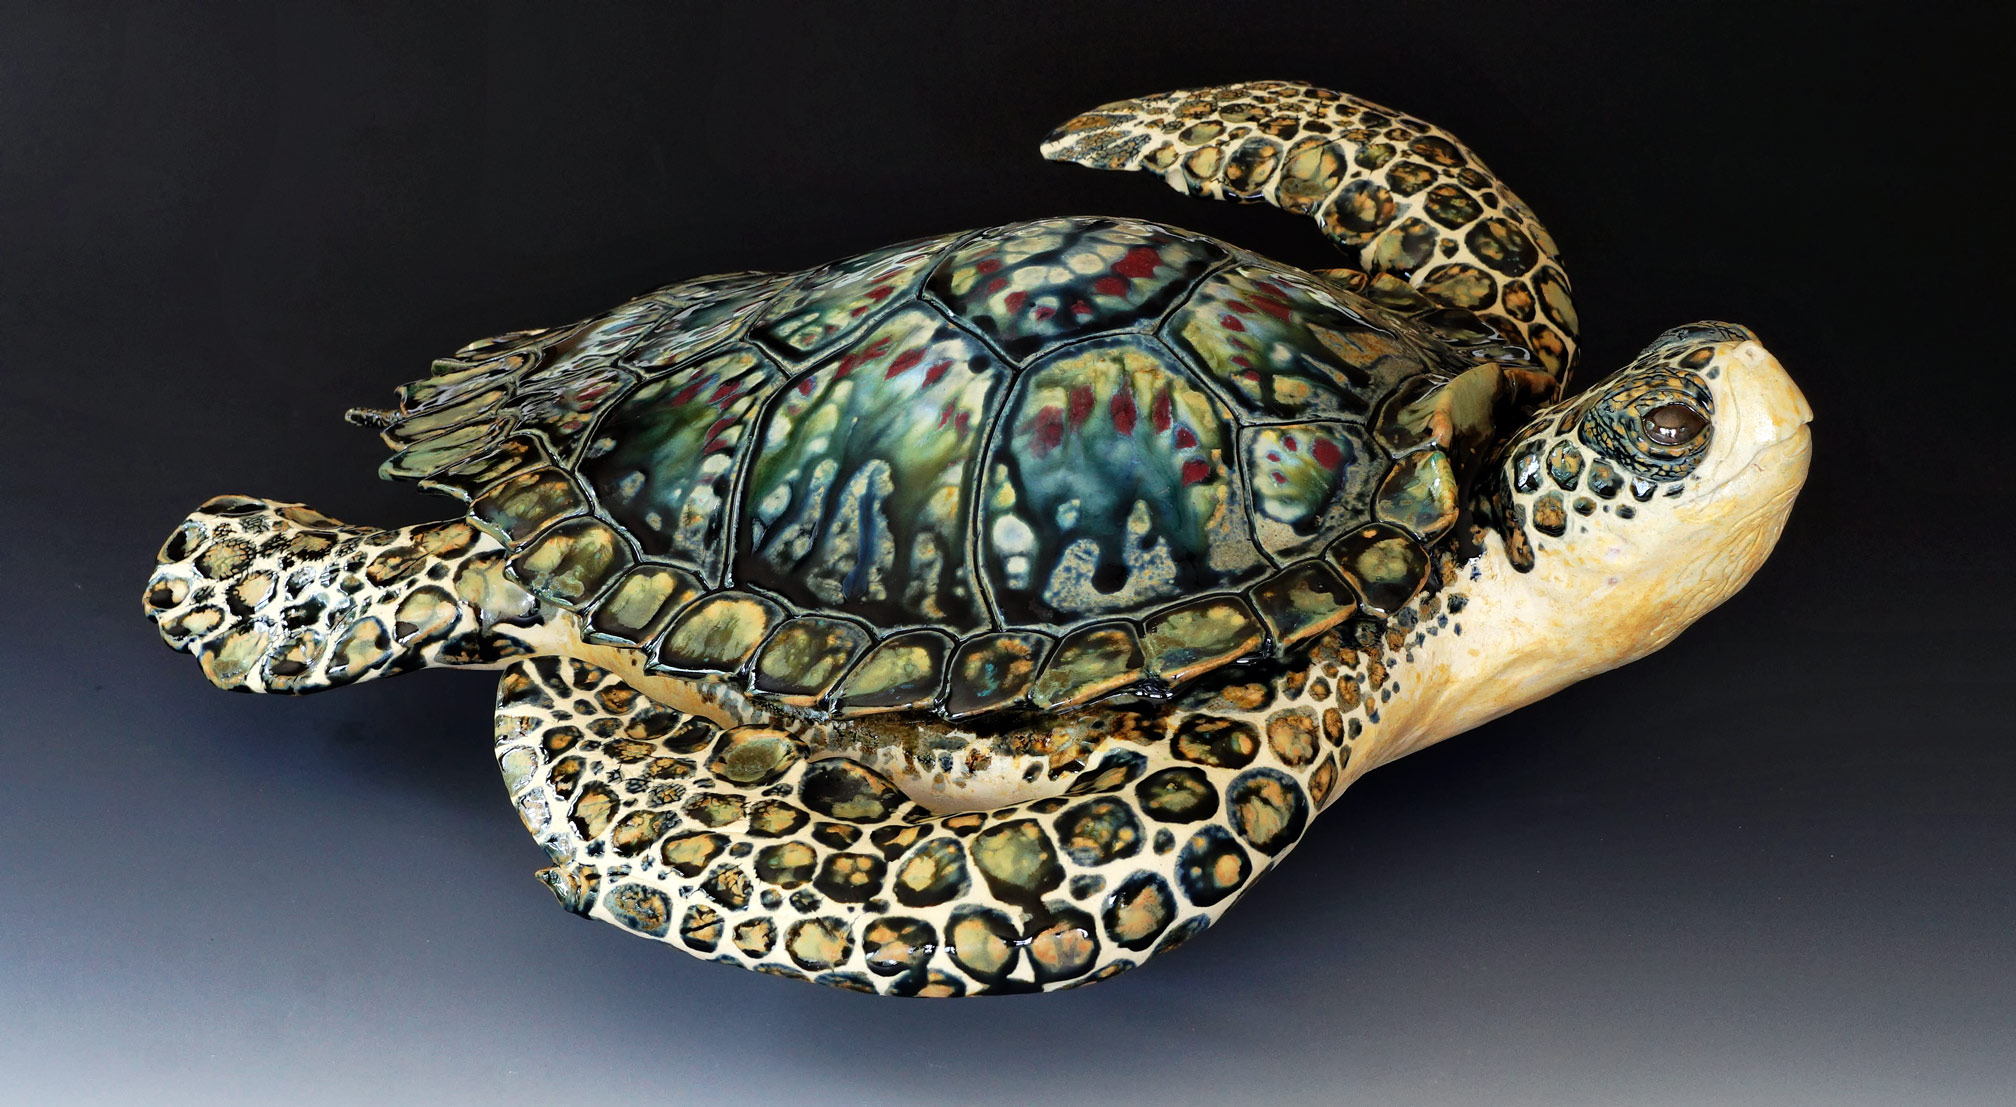 Free Standing Sea Turtle, 21 inches long